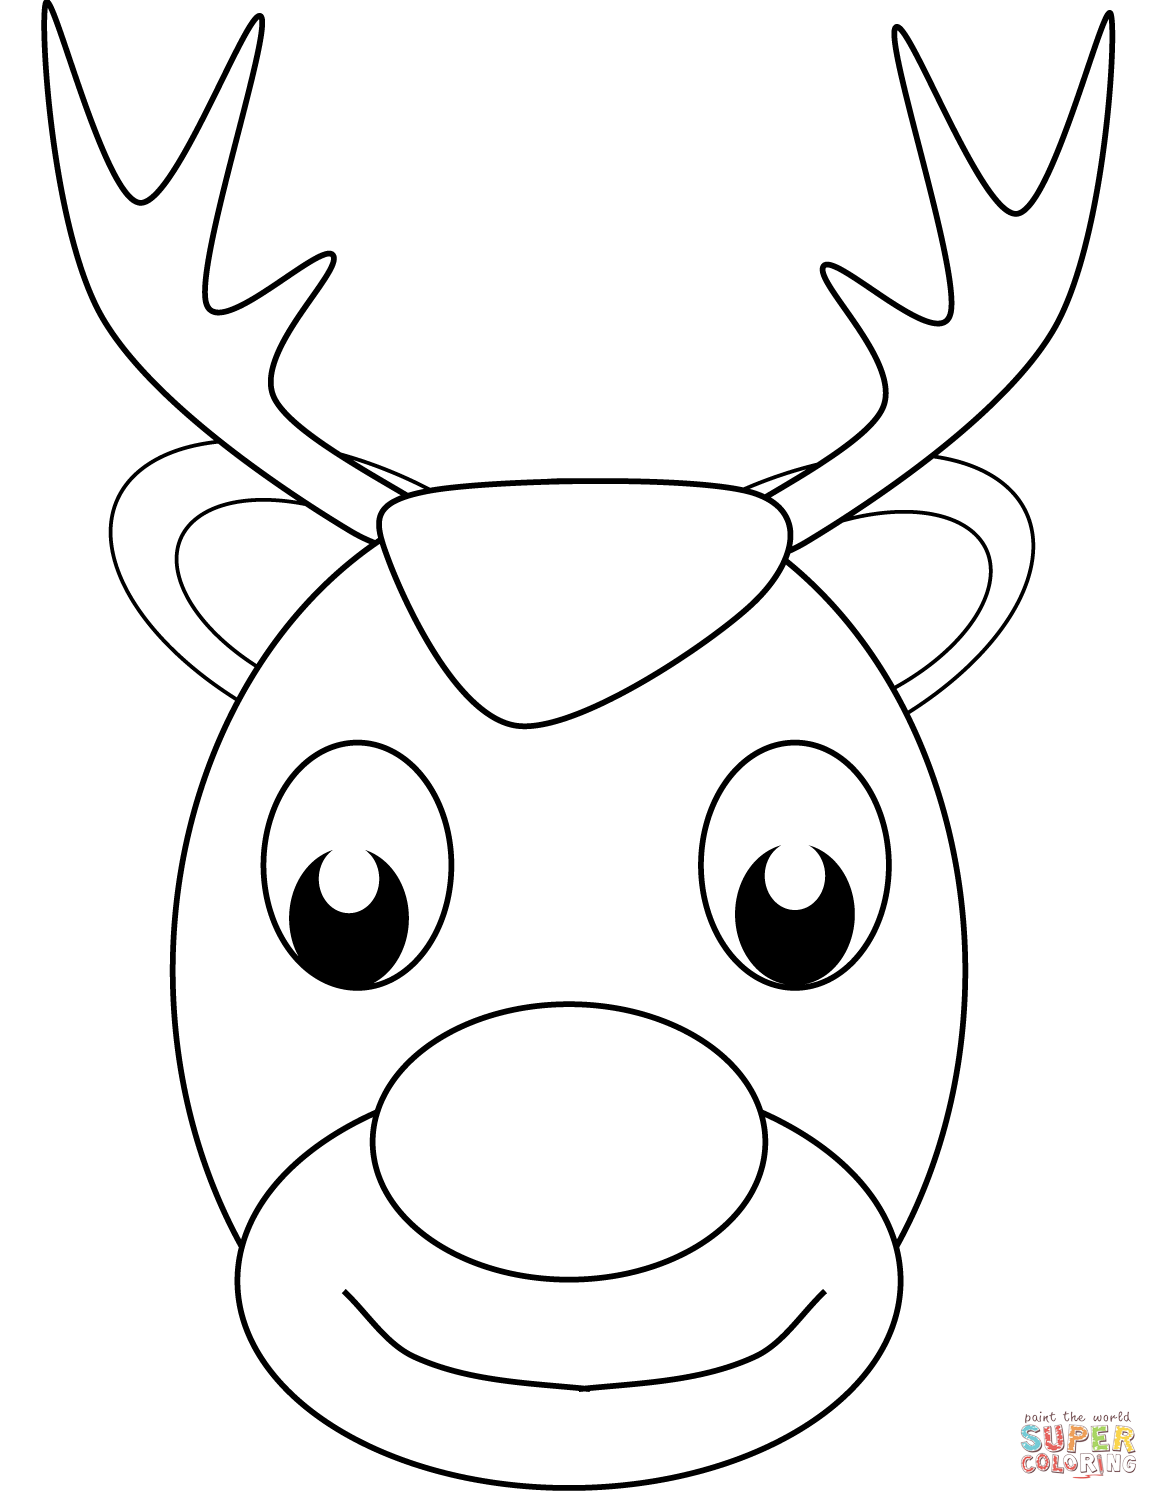 christmas reindeer coloring pages 13 christmas reindeer coloring pages gtgt disney coloring pages pages coloring christmas reindeer